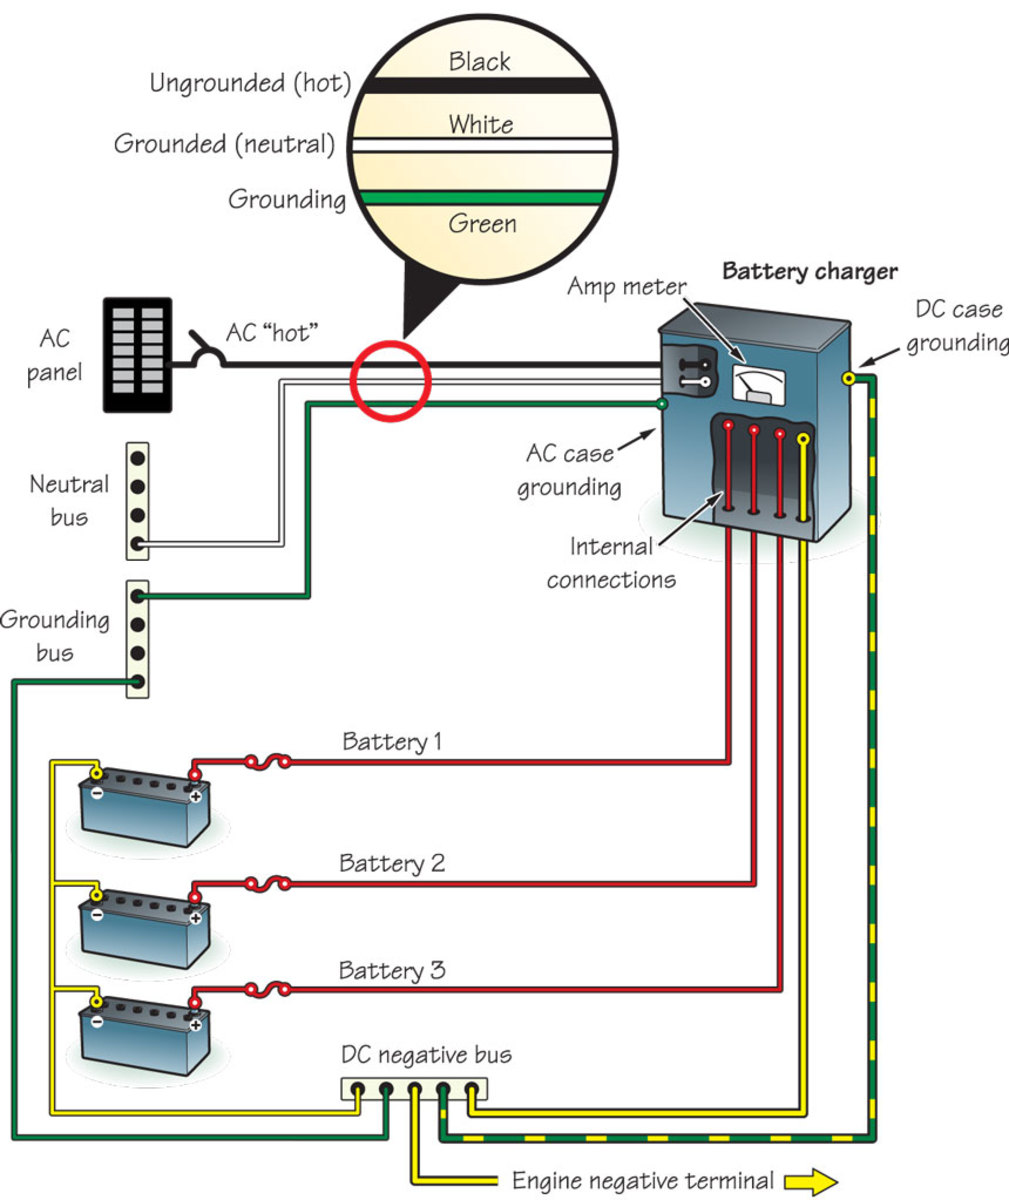 hight resolution of charger wiring soundings online basic ignition wiring diagram case dc wiring diagram